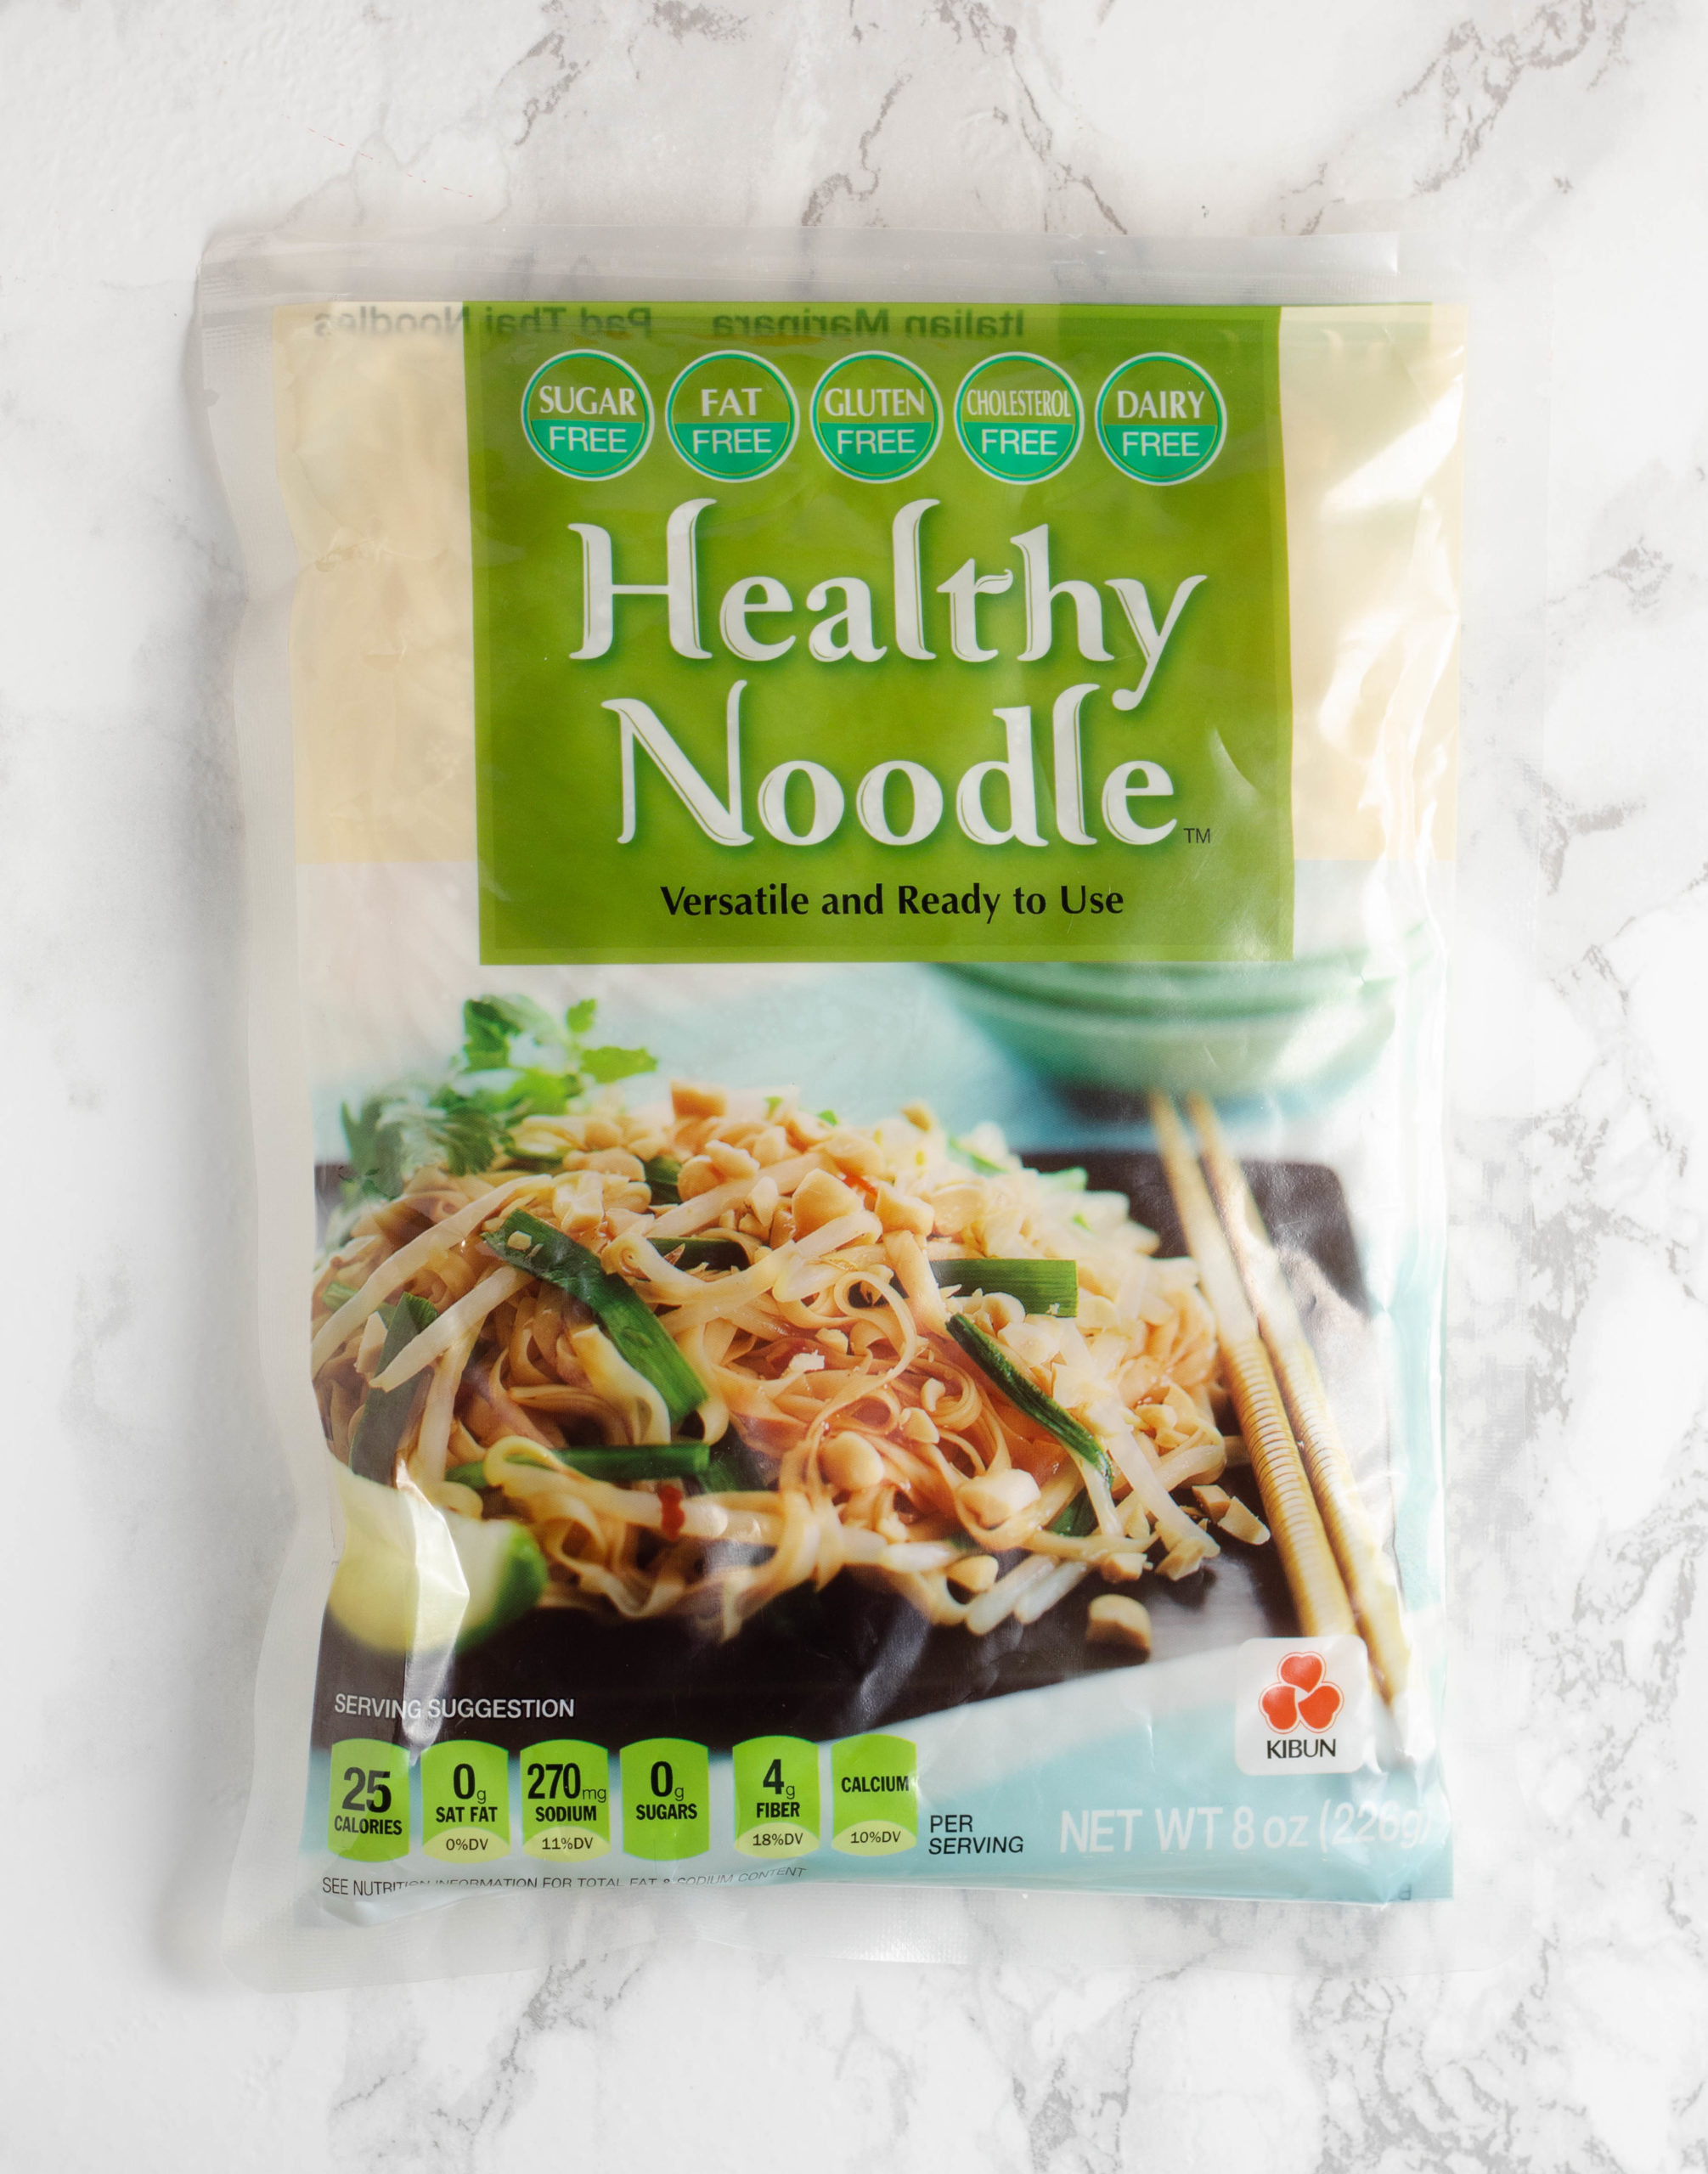 Shirakati (konjac) noodles are great for all diets because they are zero calorie, zero carb, and gluten free.